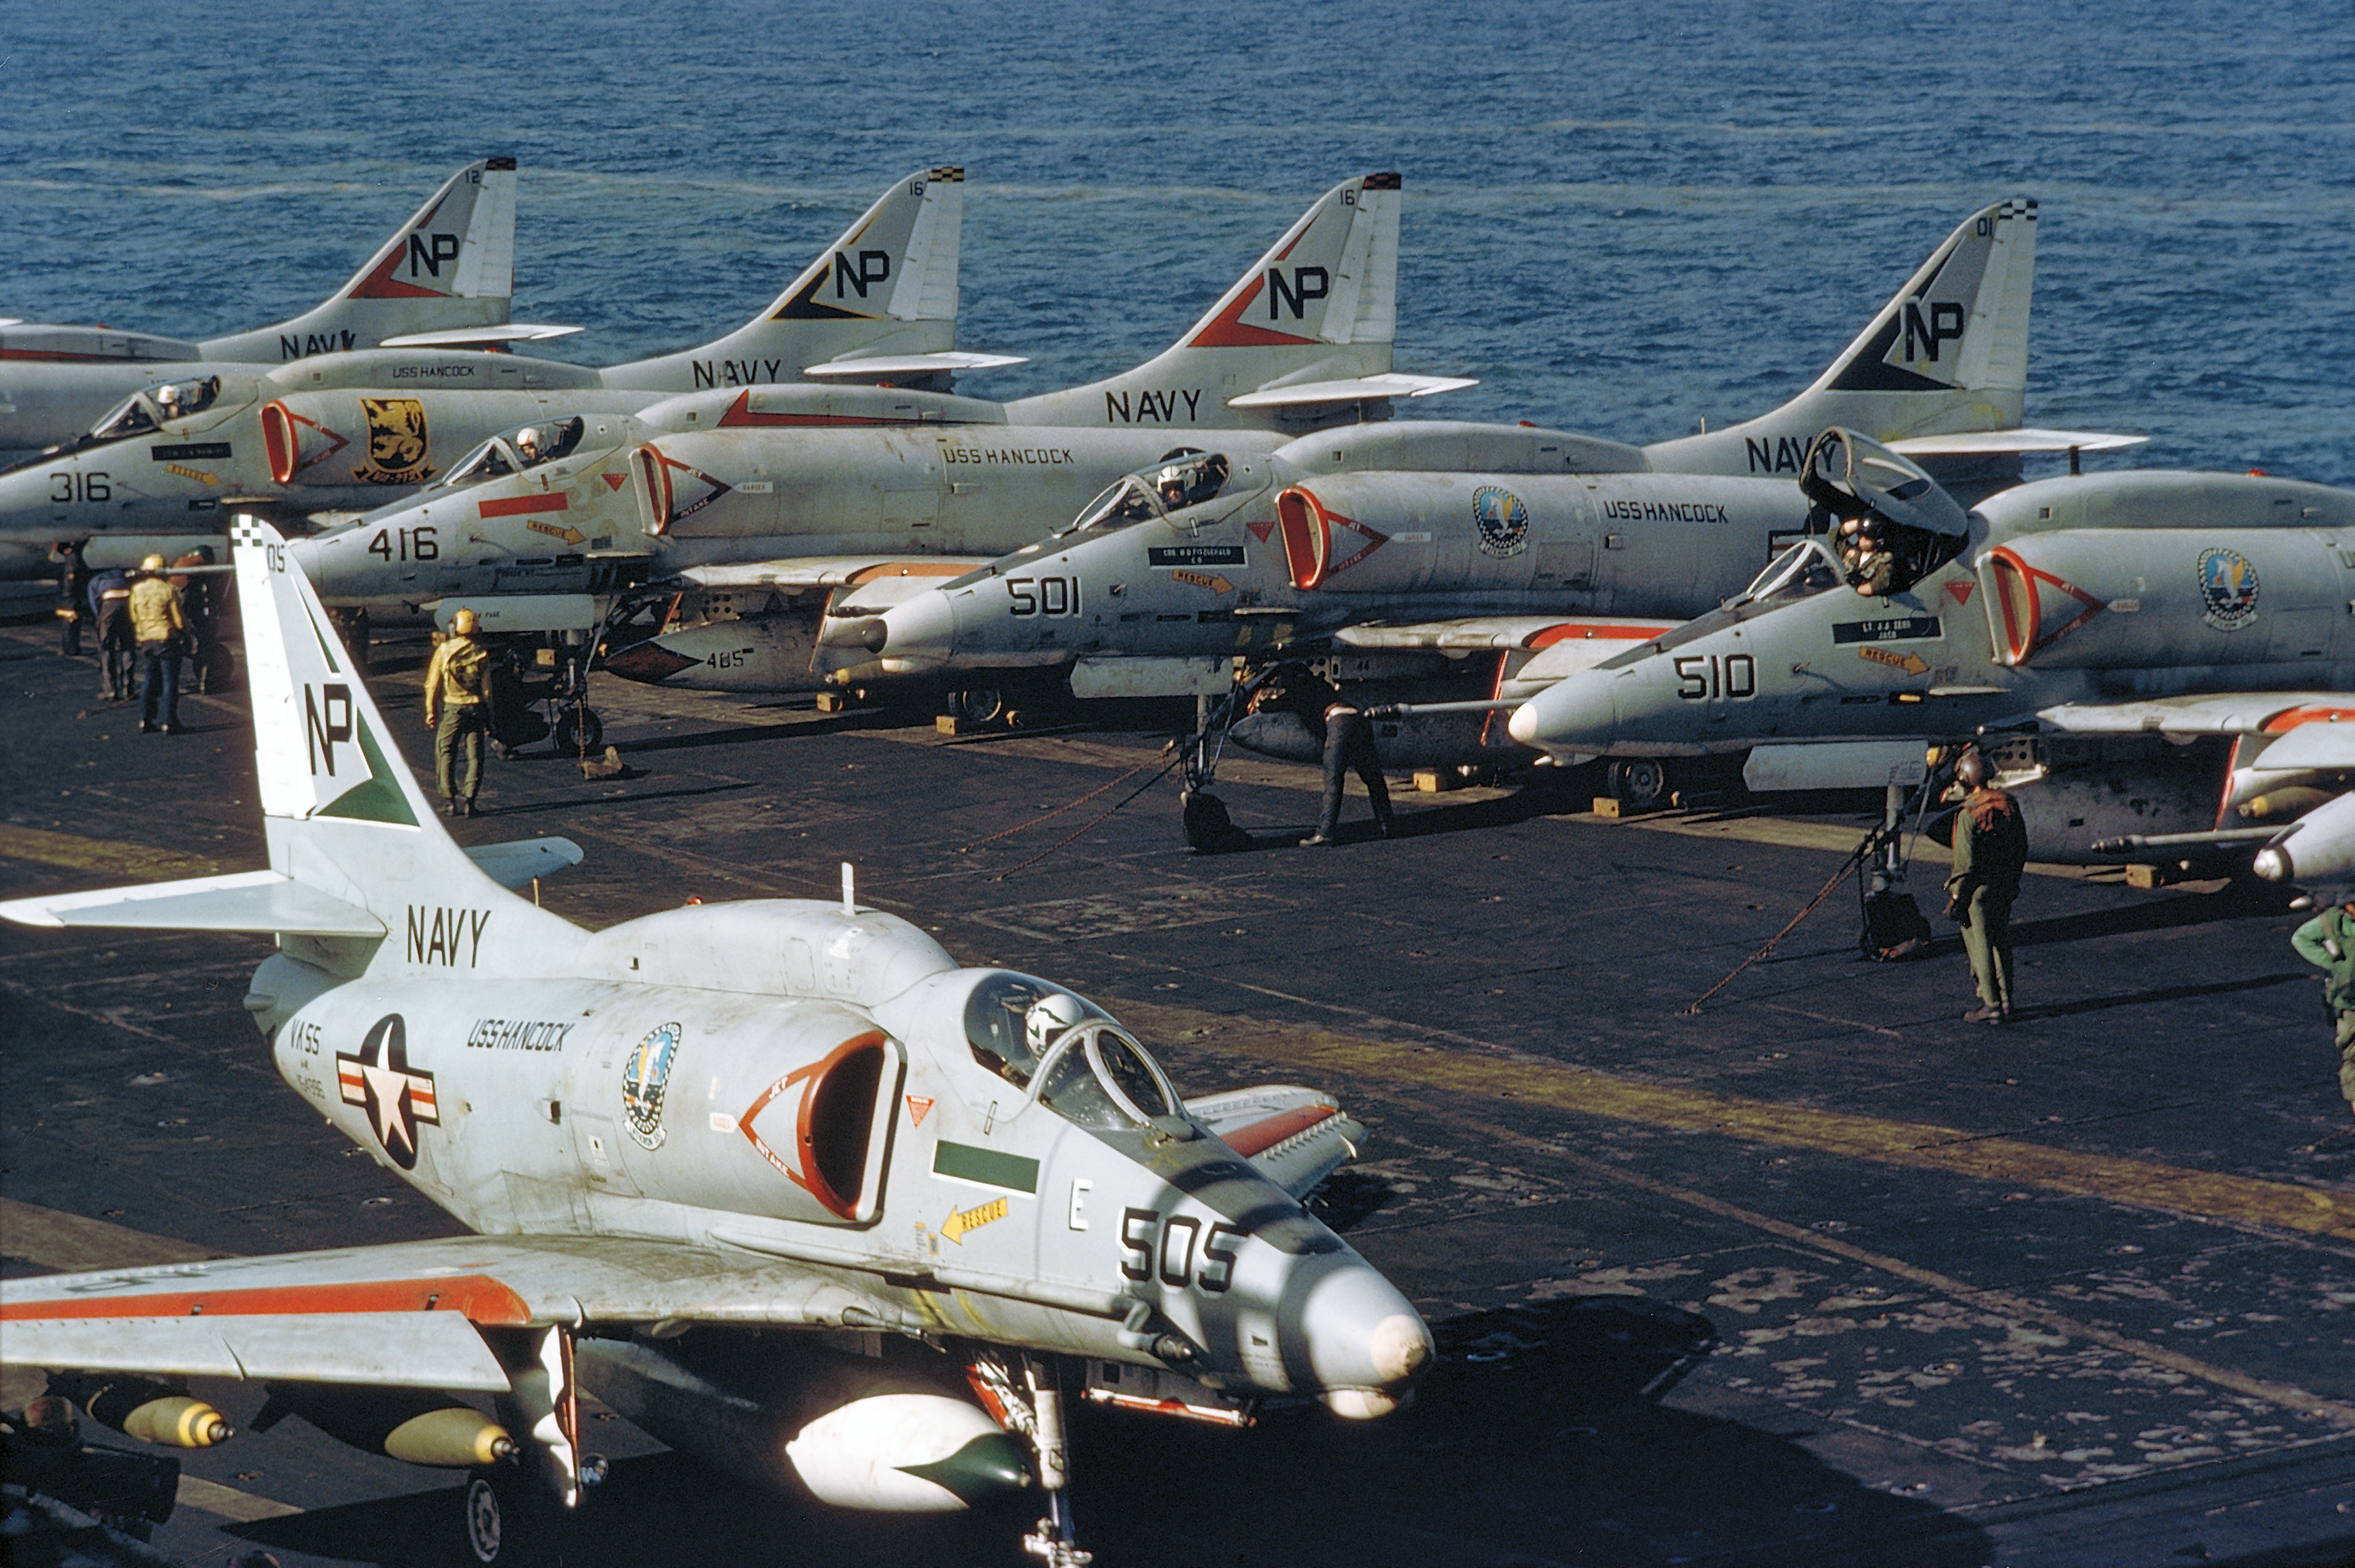 Attack Squadron 55 (VA-55) A-4F Skyhawk aircraft of Attack Carrier Wing 21 are parked on the flight deck of the attack aircraft carrier USS HANCOCK (CVA 19). Image via Wikipedia